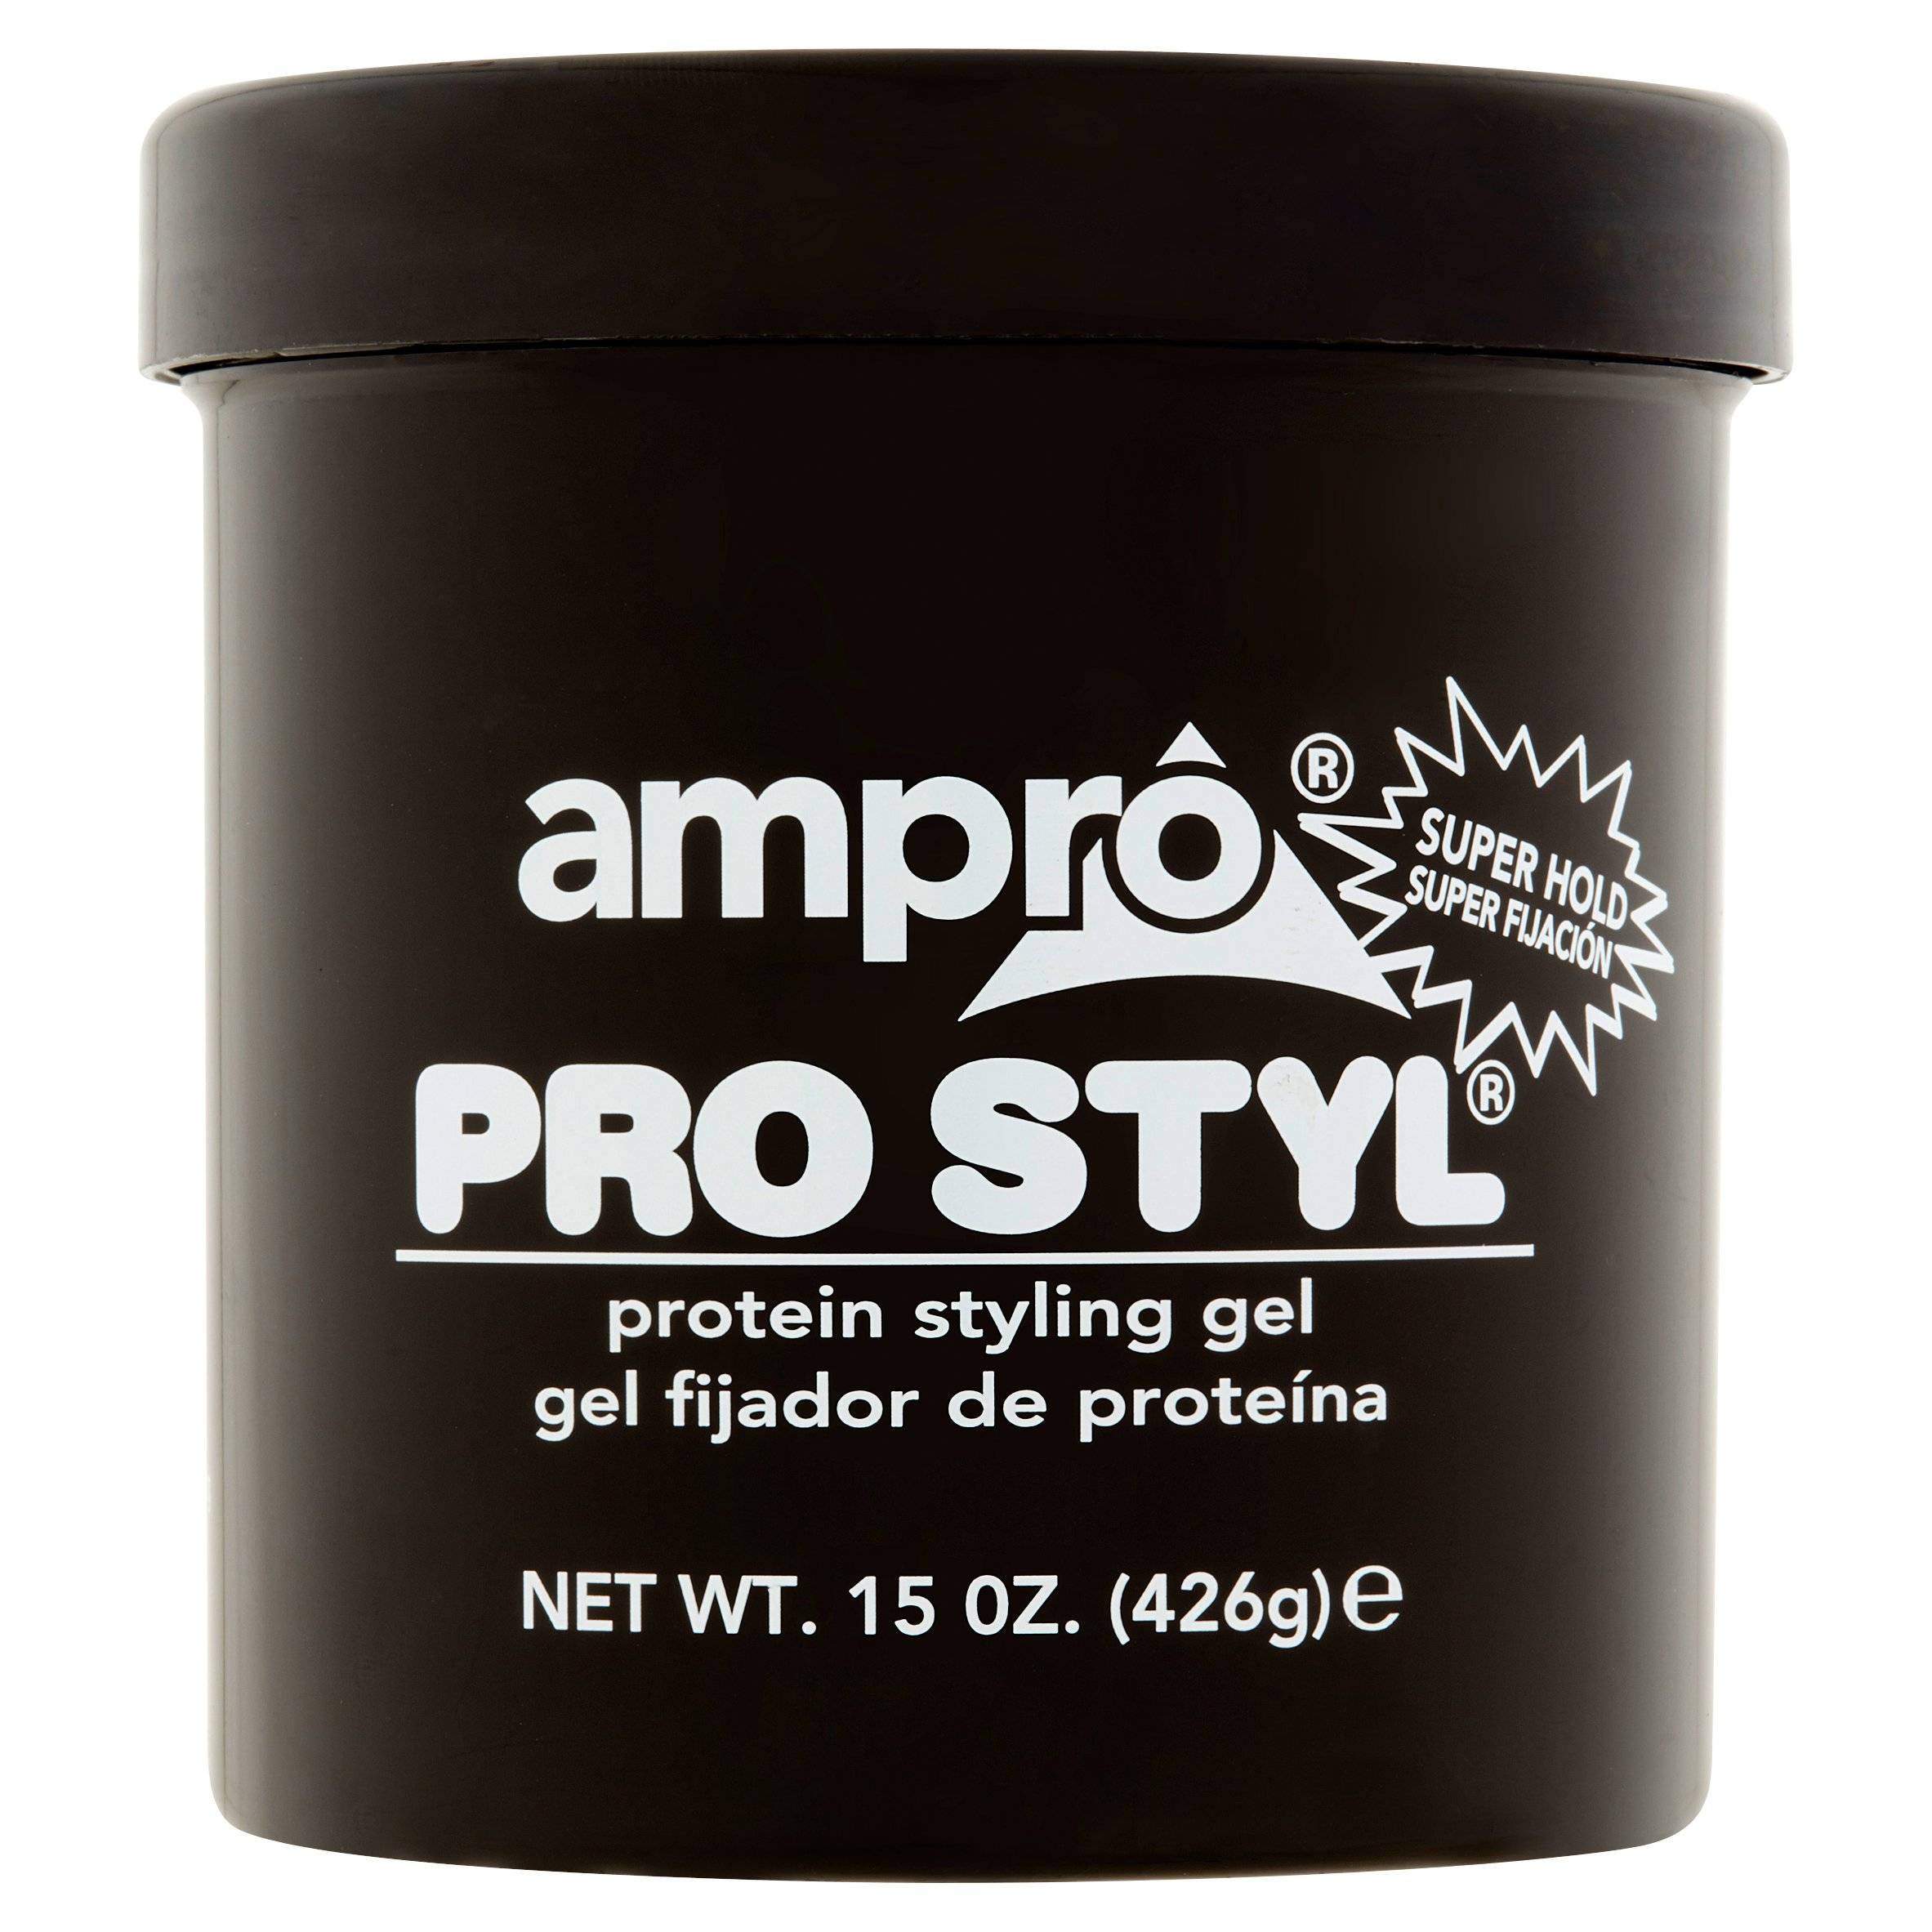 Ampro Pro Styl Super Hold Protein Styling Gel, 15 oz